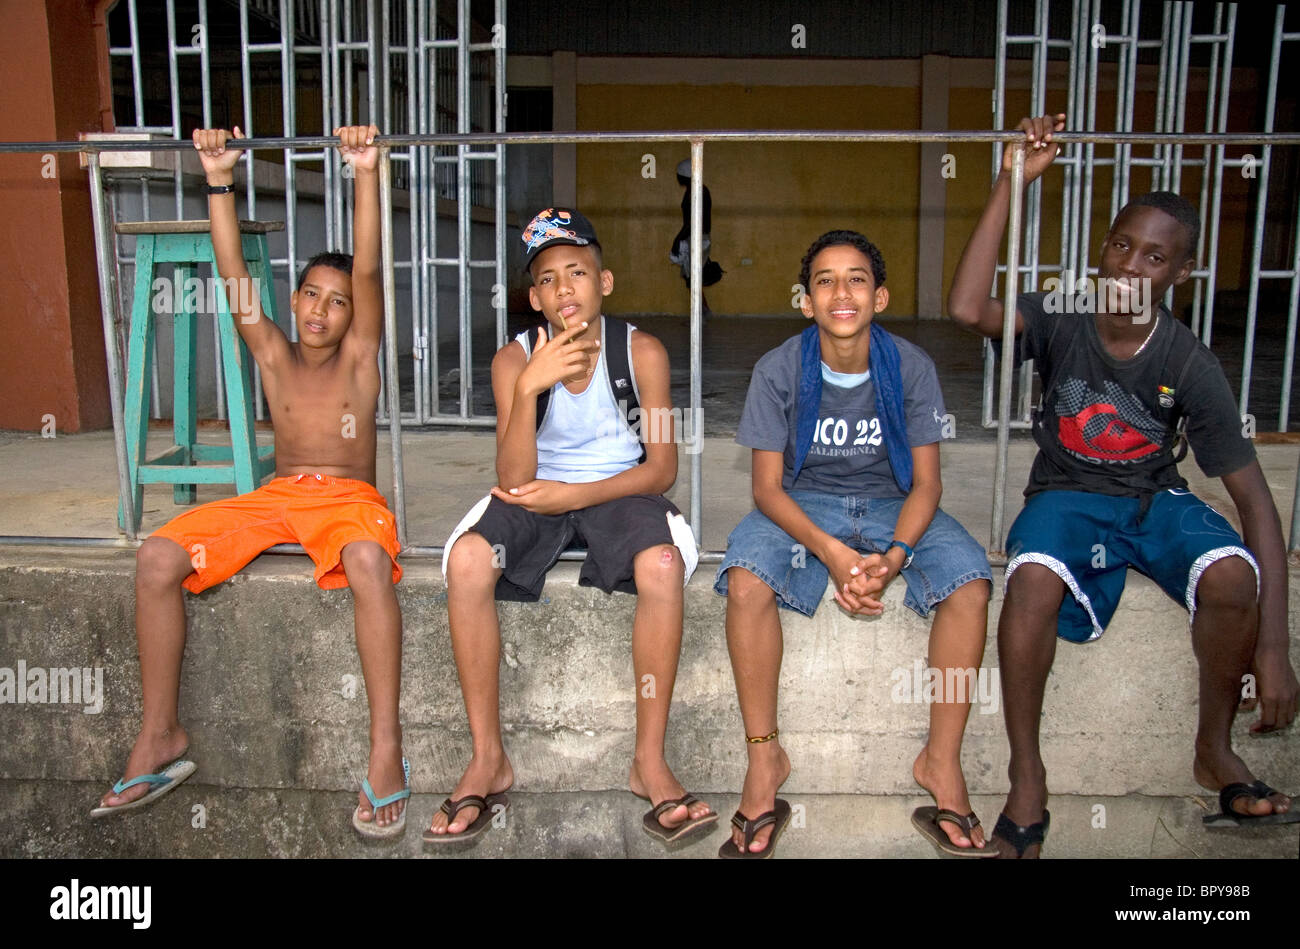 Costa Rican teenagers at Puerto Limon, Costa Rica. - Stock Image